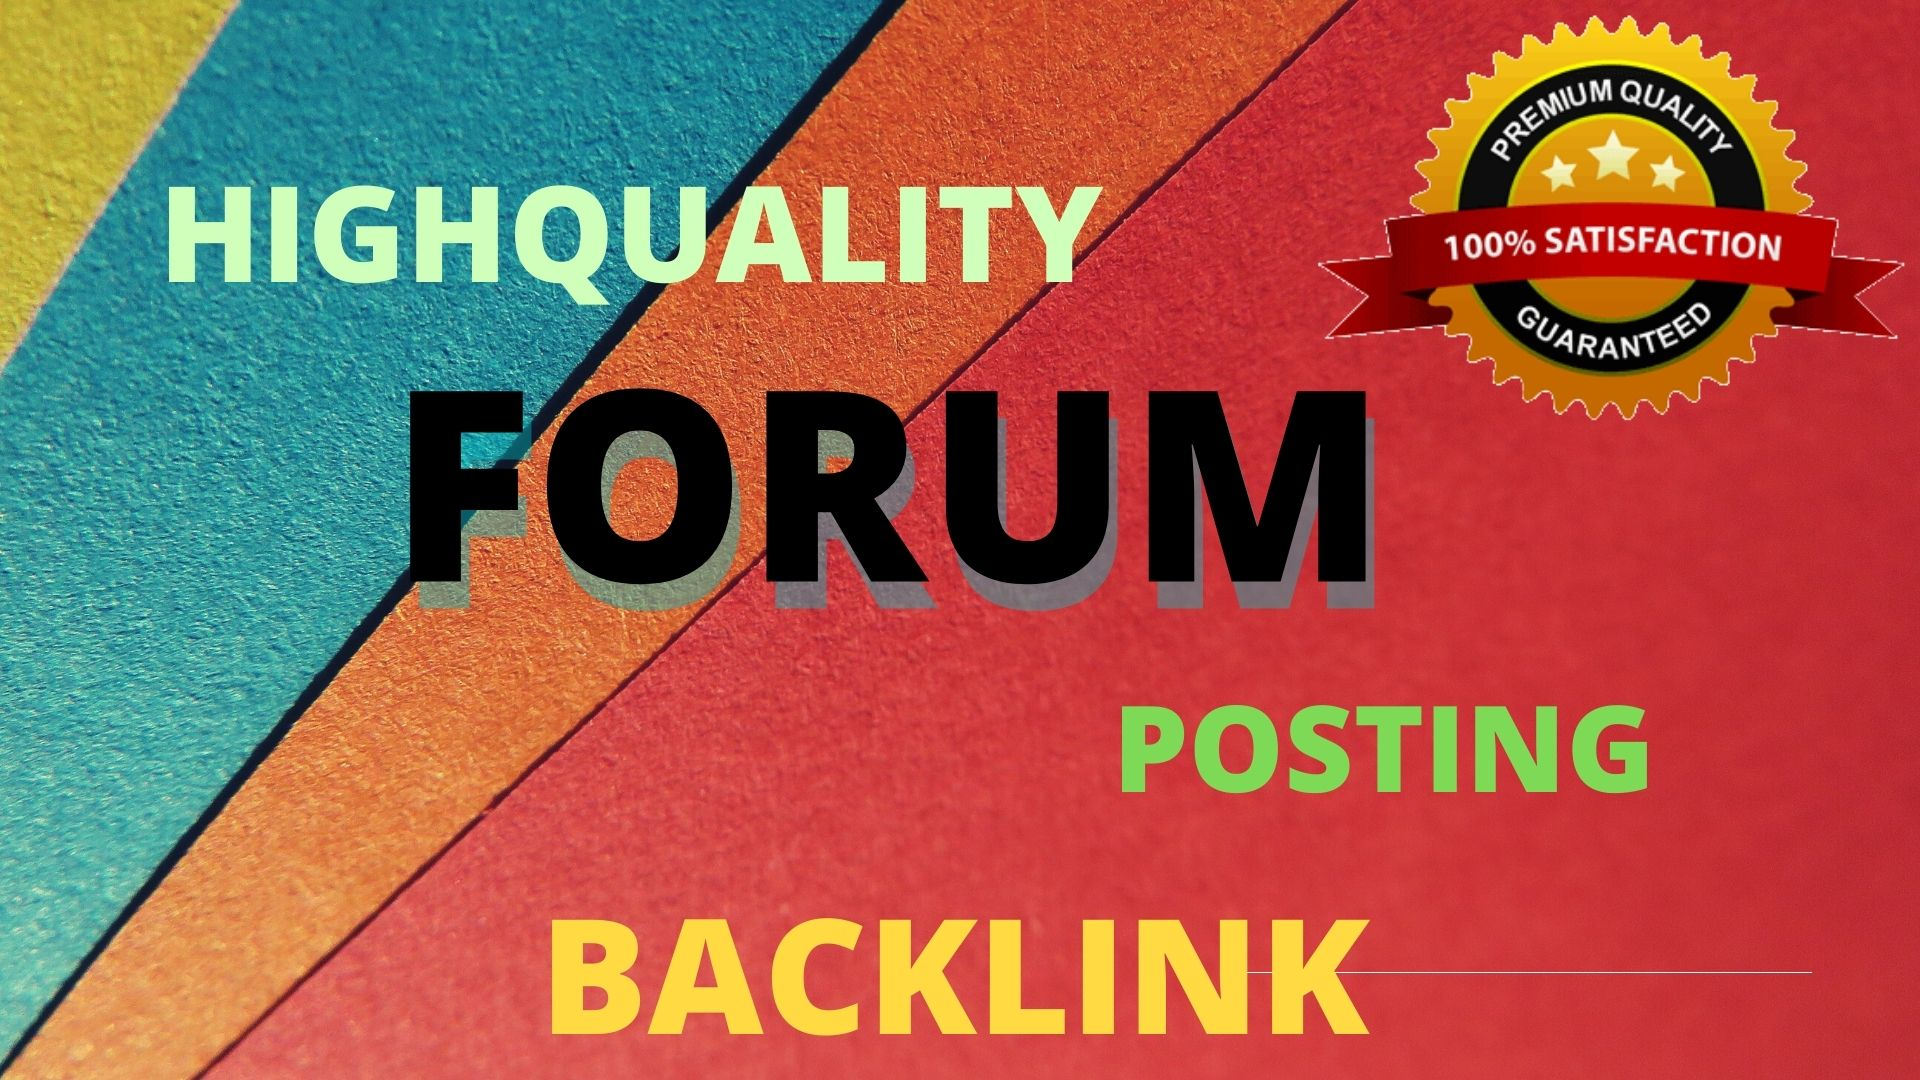 I will submit 12 forum posting.